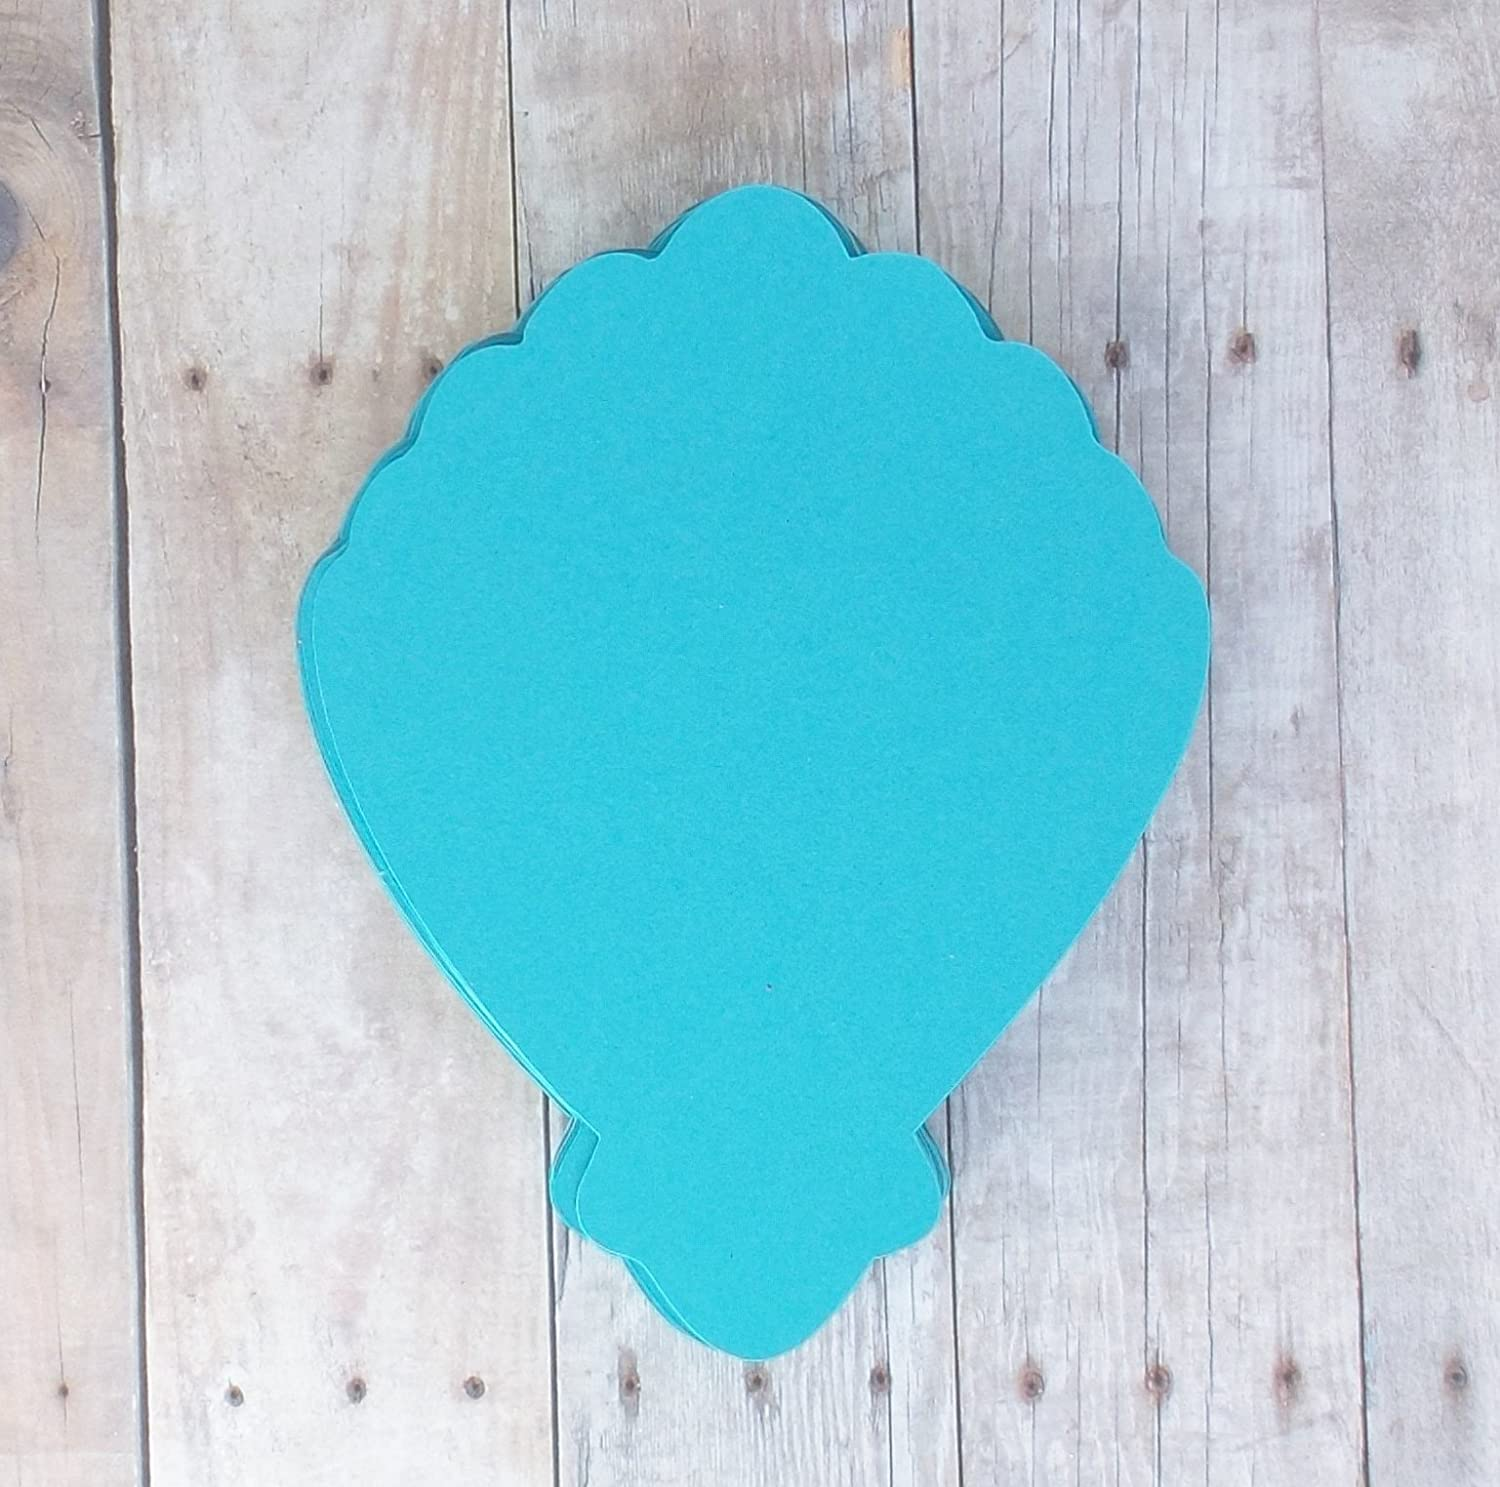 Clam Shell Die Cut Place Cards in Teal Aqua Blue-Table Cards-Food and Drink Labels-Under the Sea Mermaid Party-25 Pieces